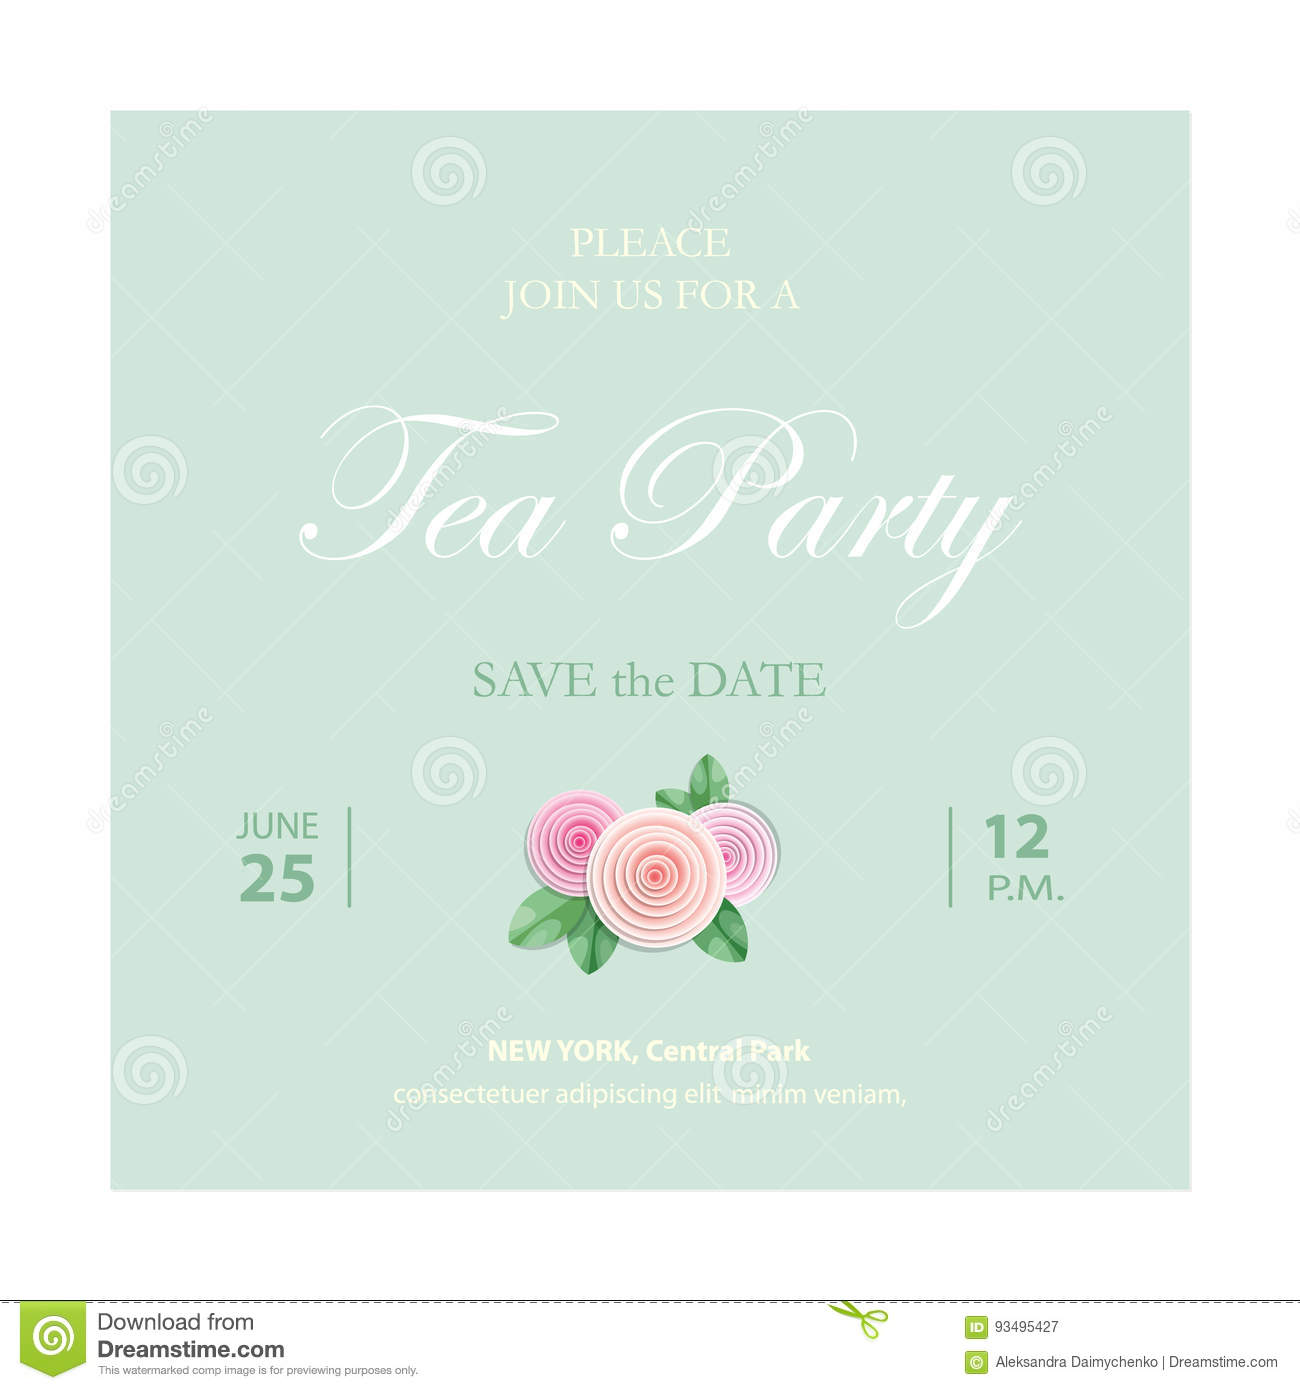 save the date invitation card wedding template with sample text